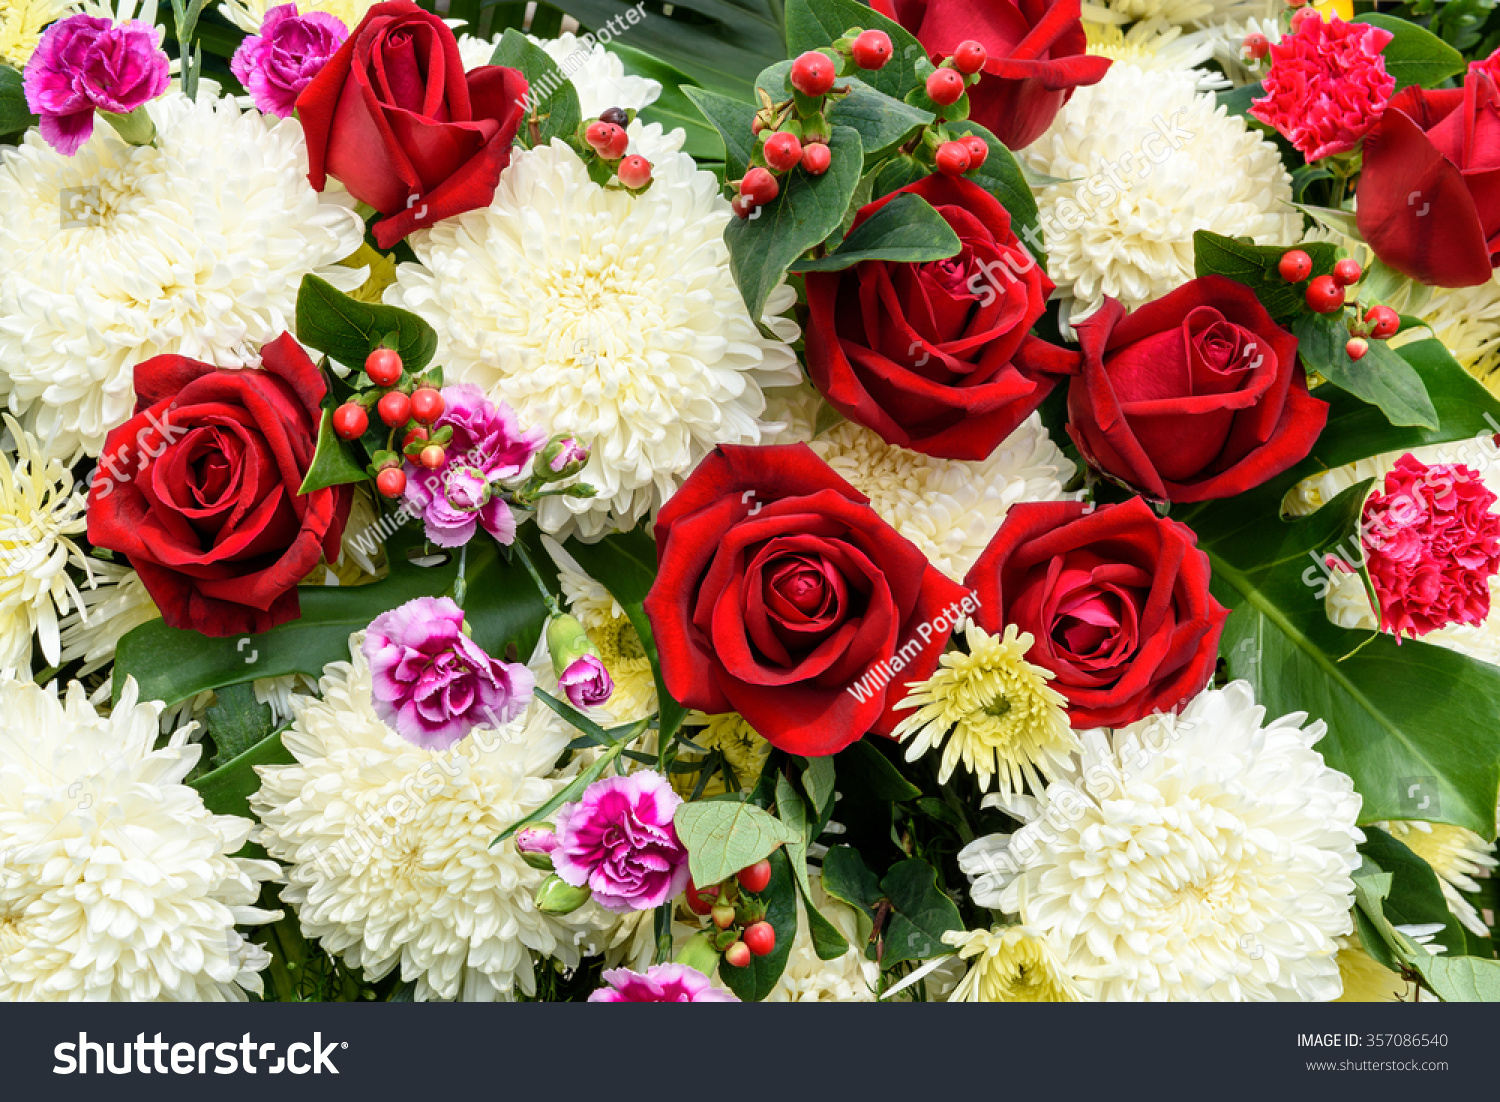 Bunch flowers flower bouquets including red stock photo royalty bunch of flowers flower bouquets including red roses white chrysanthemums and violet carnations izmirmasajfo